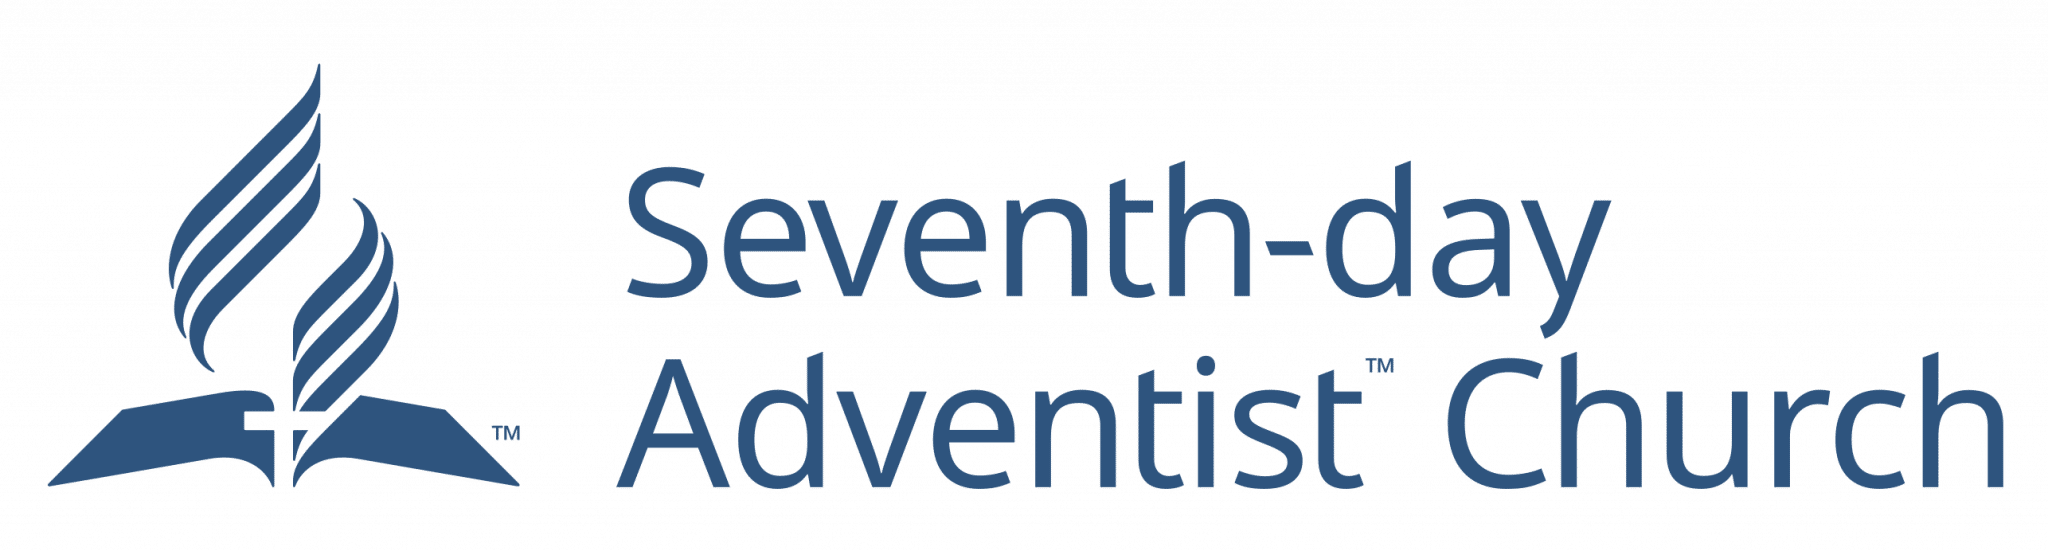 adventist-en-tm–denim